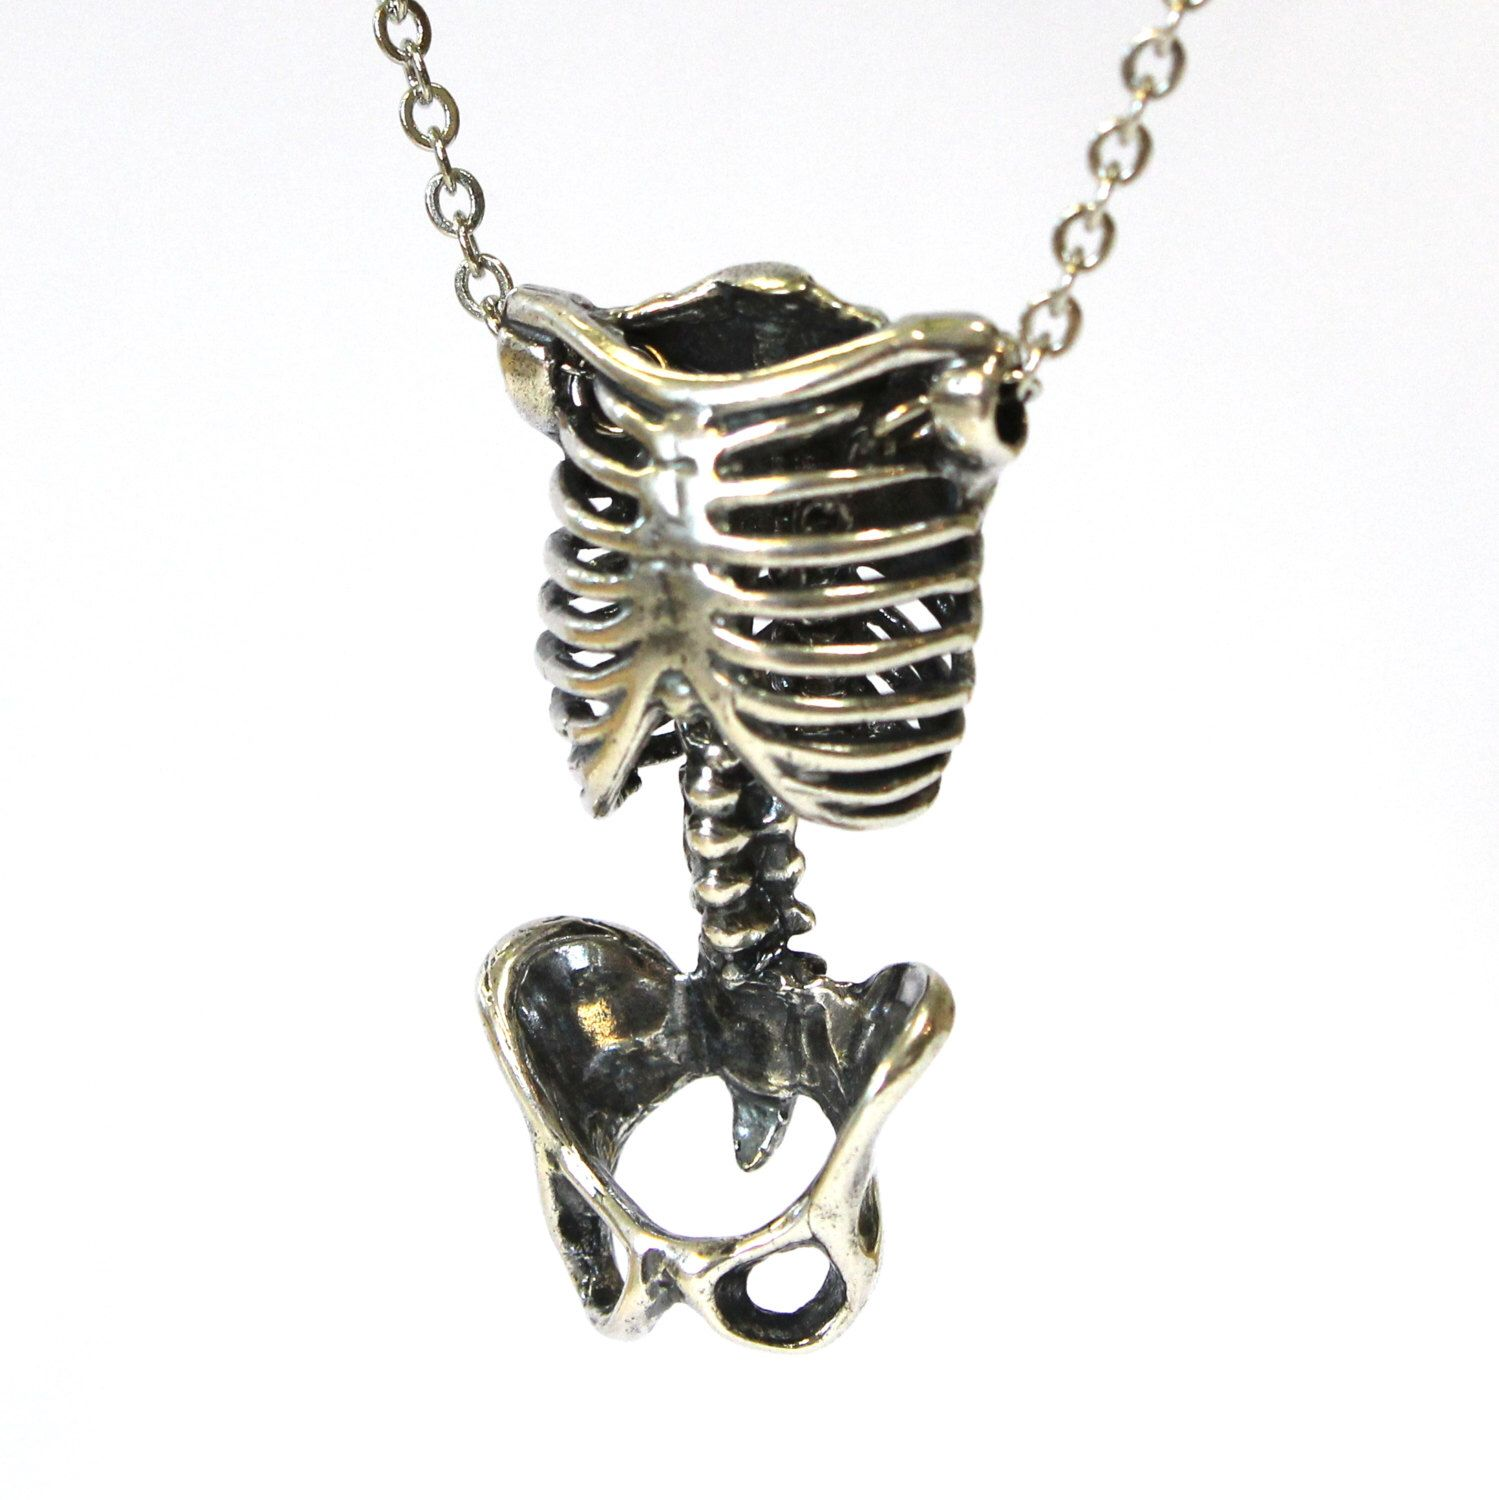 Pin by v on gothabilly goth pinup vintage pinterest rib cage skeleton torso necklace silver anatomical human skeleton pendant necklace pelvis rib cage 083 037 aloadofball Image collections